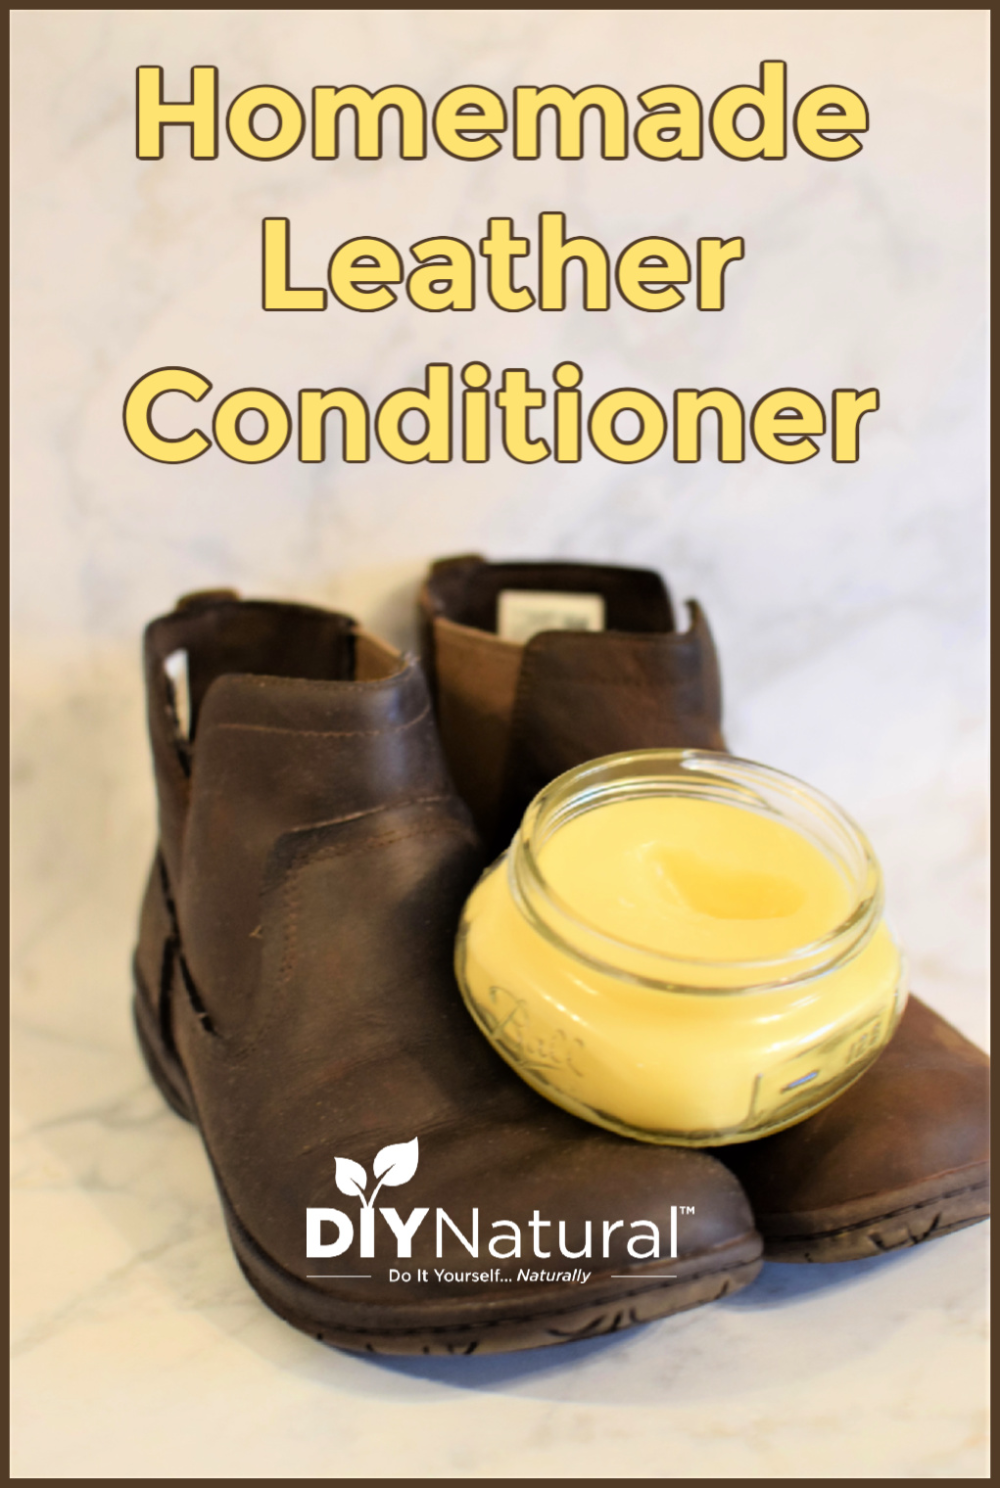 Homemade Leather Conditioner Clean, Soften, and Protect